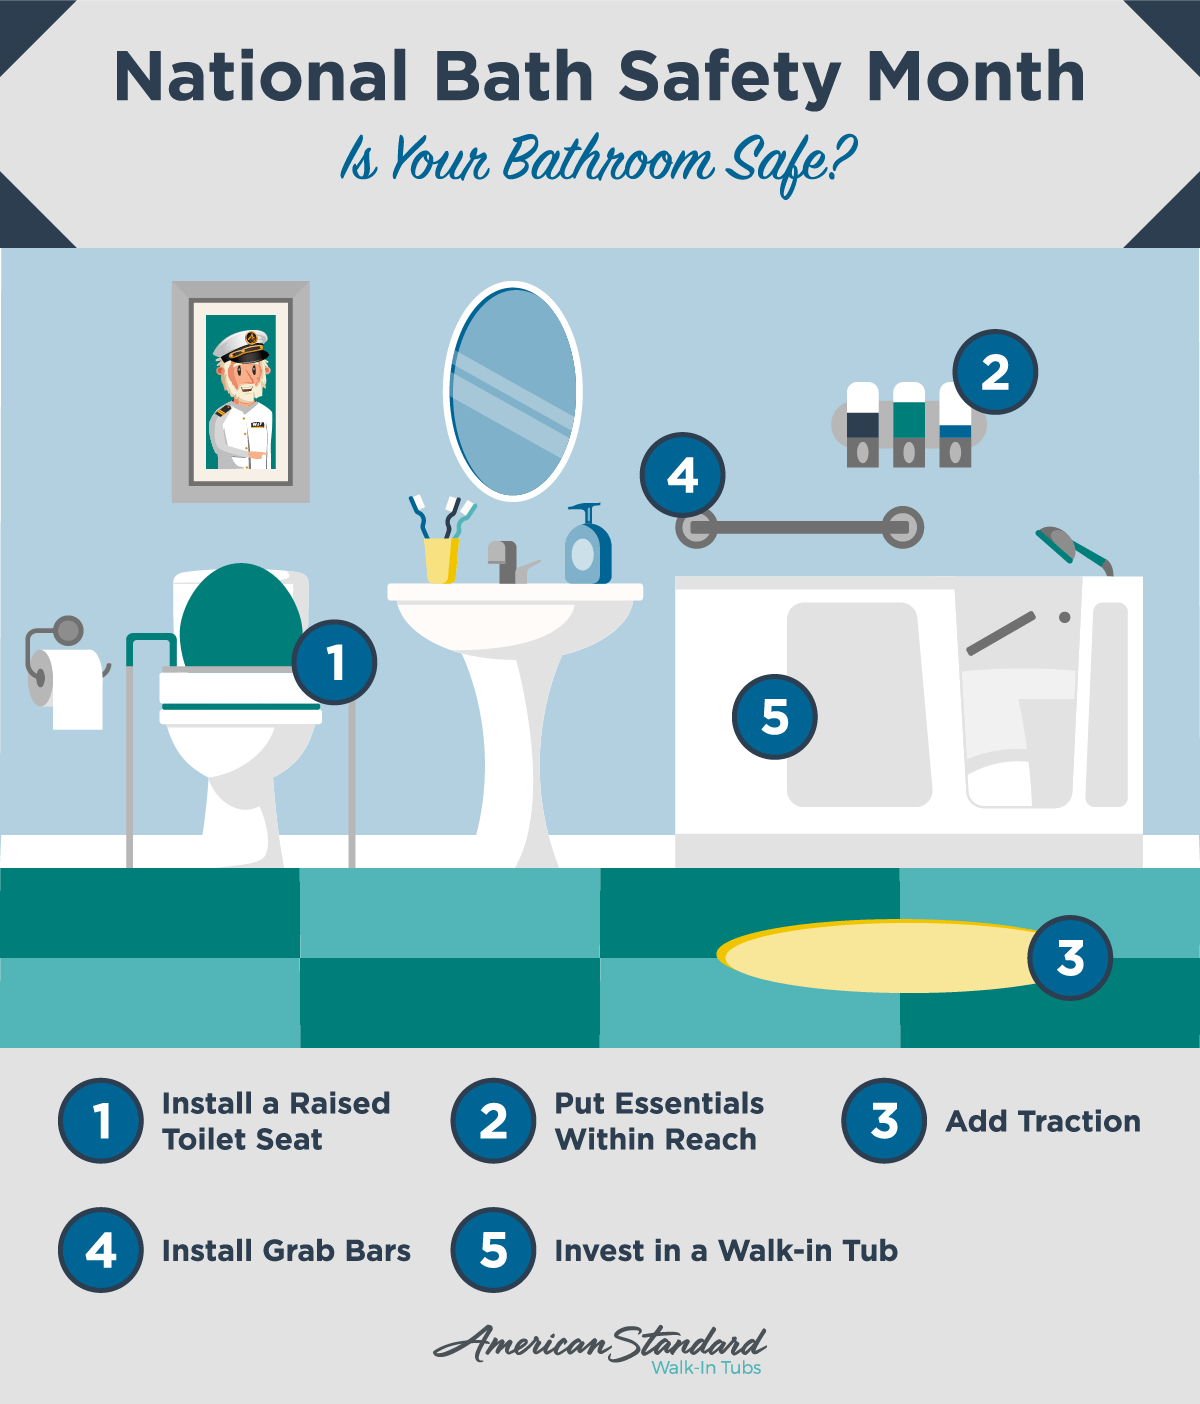 National Bath Safety Month Is Your Bathroom Safe